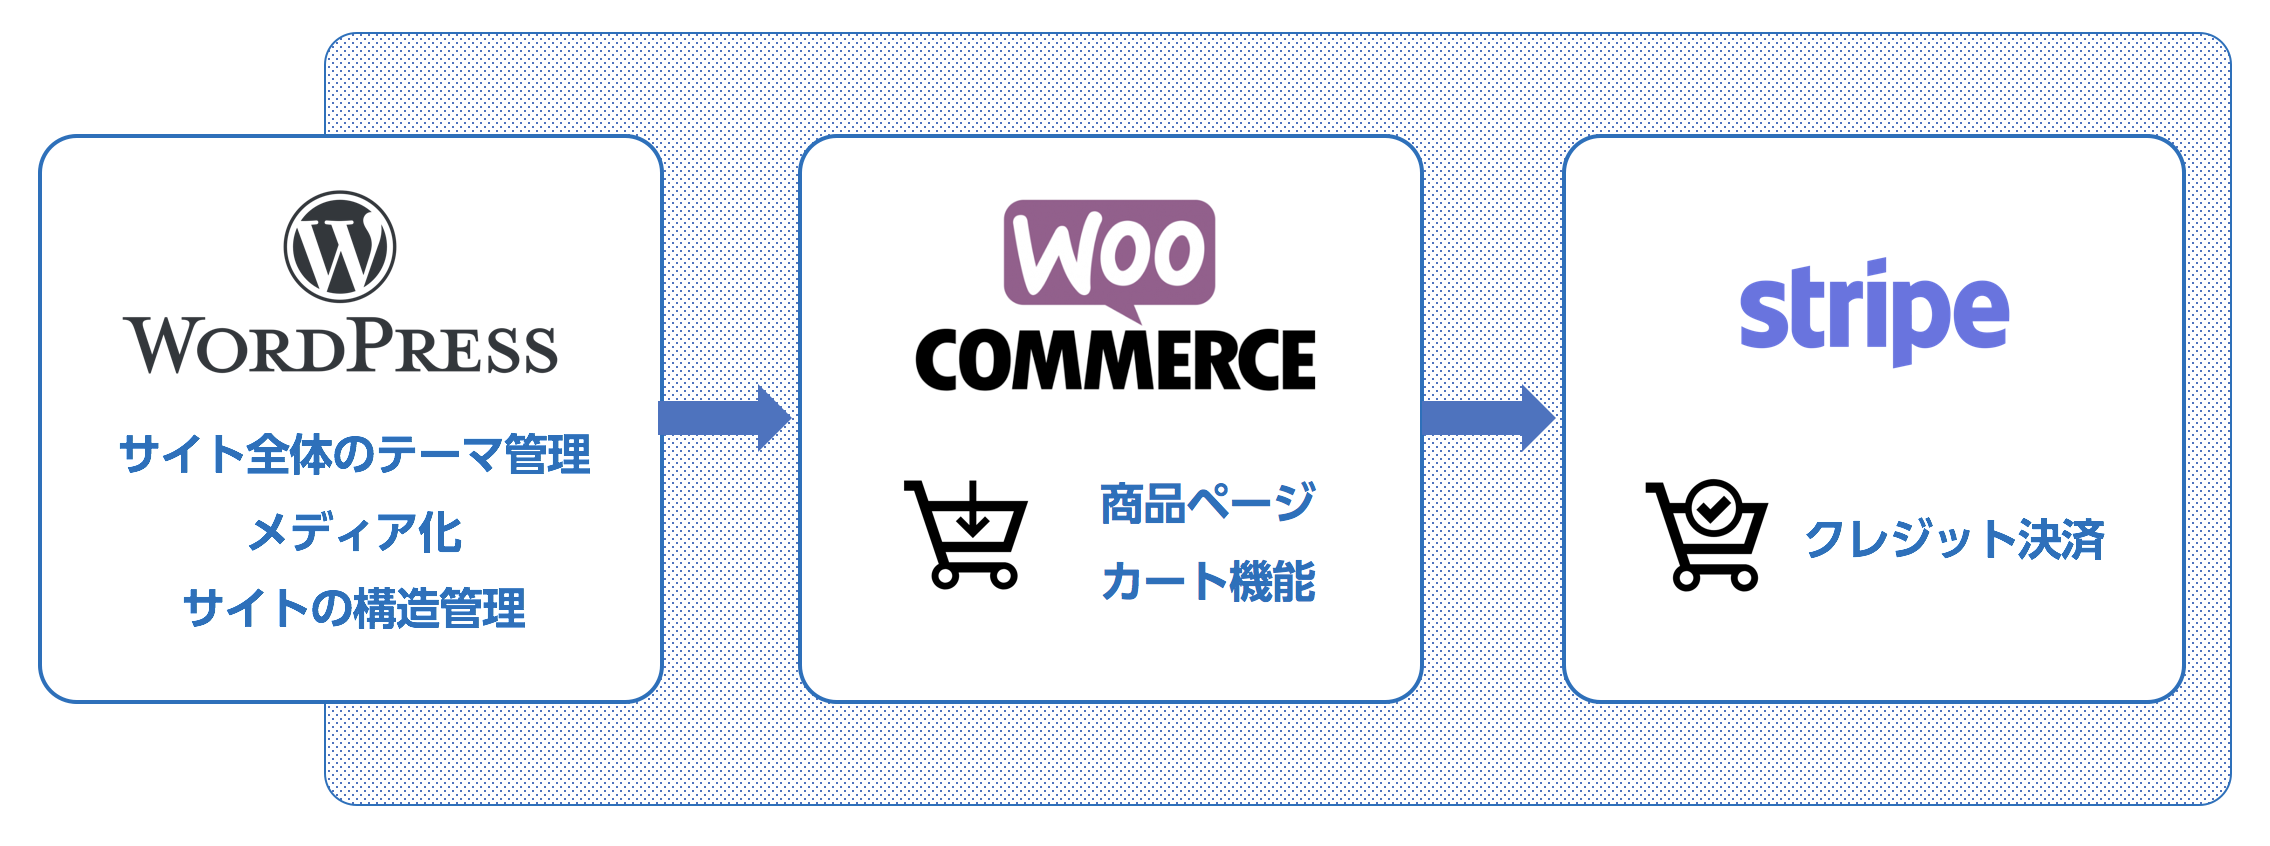 worpress+WooCommerce+stripe